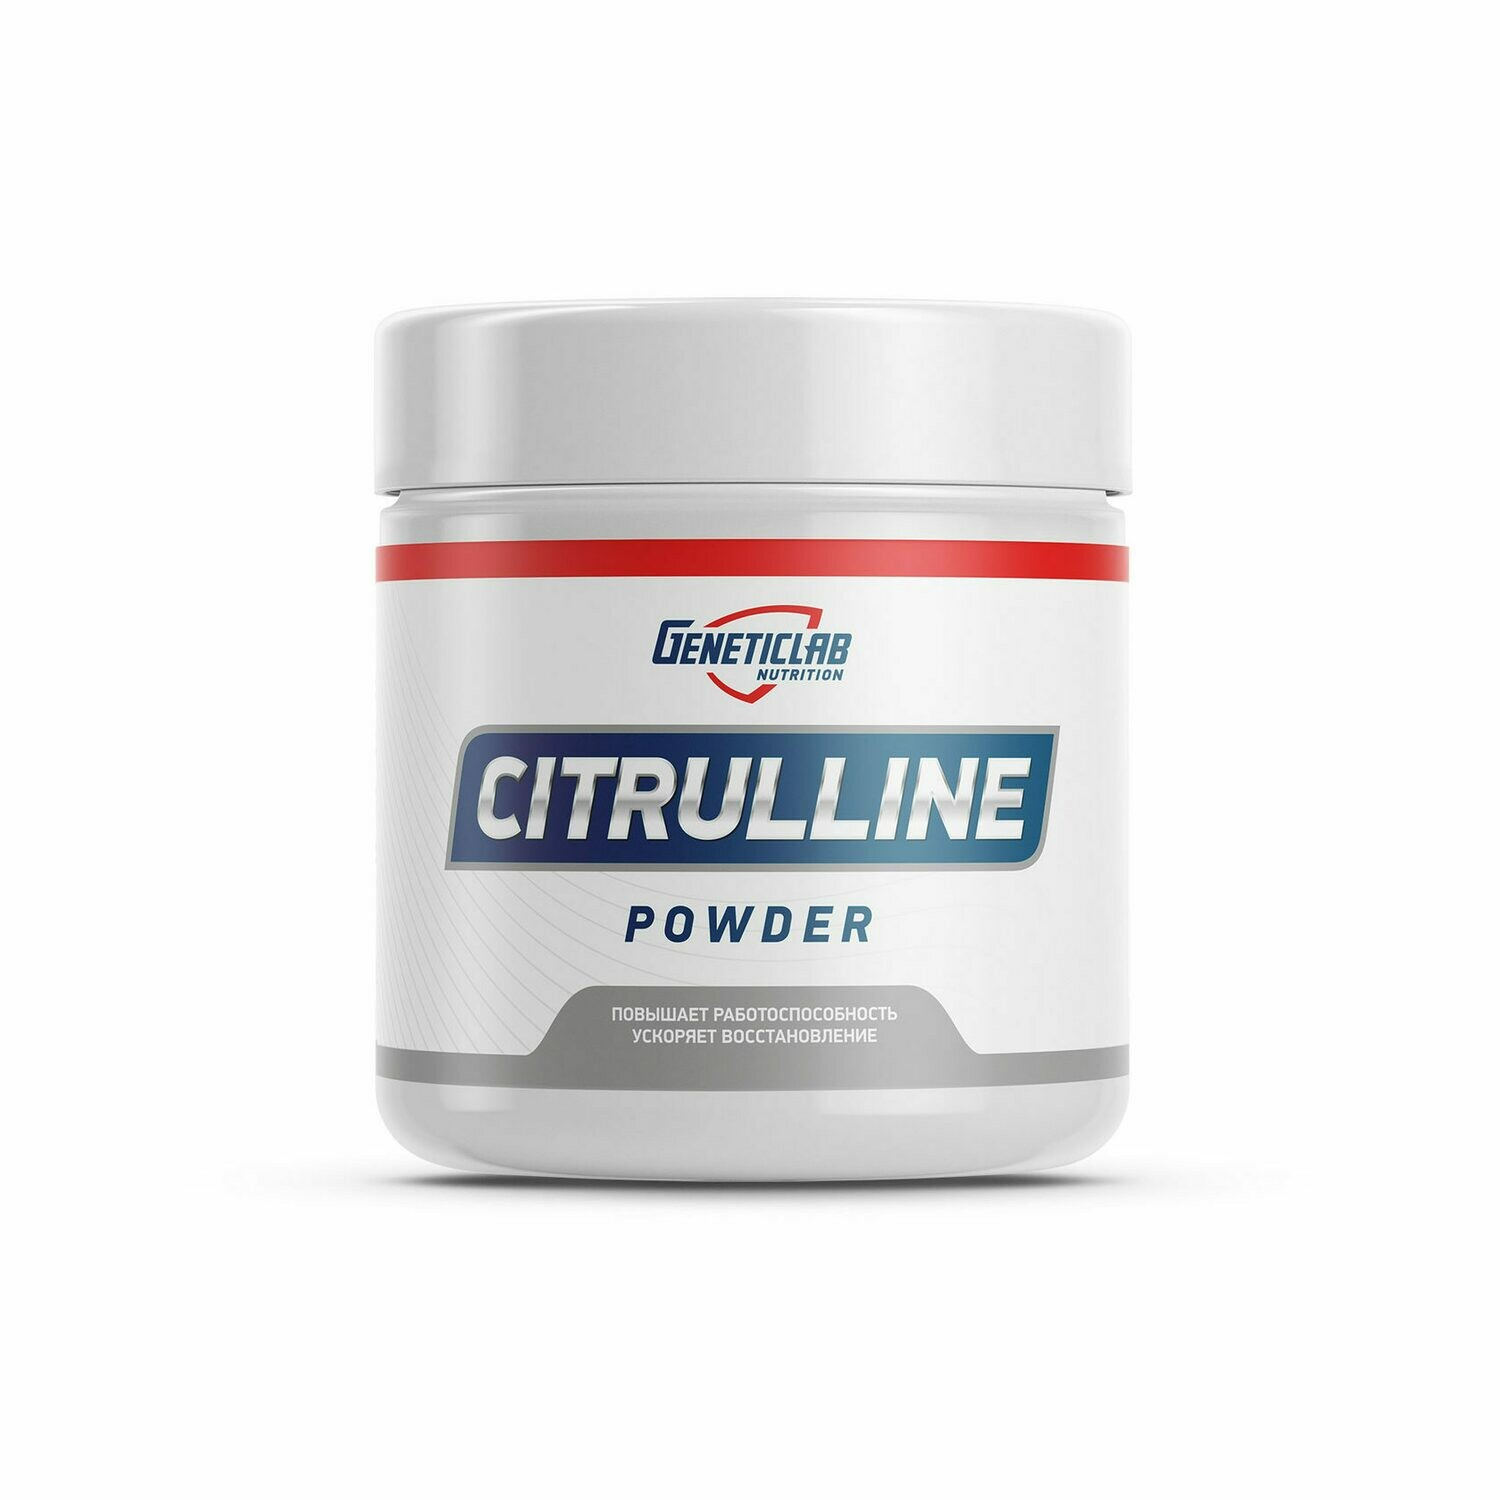 Citrulline Powder GeneticLab